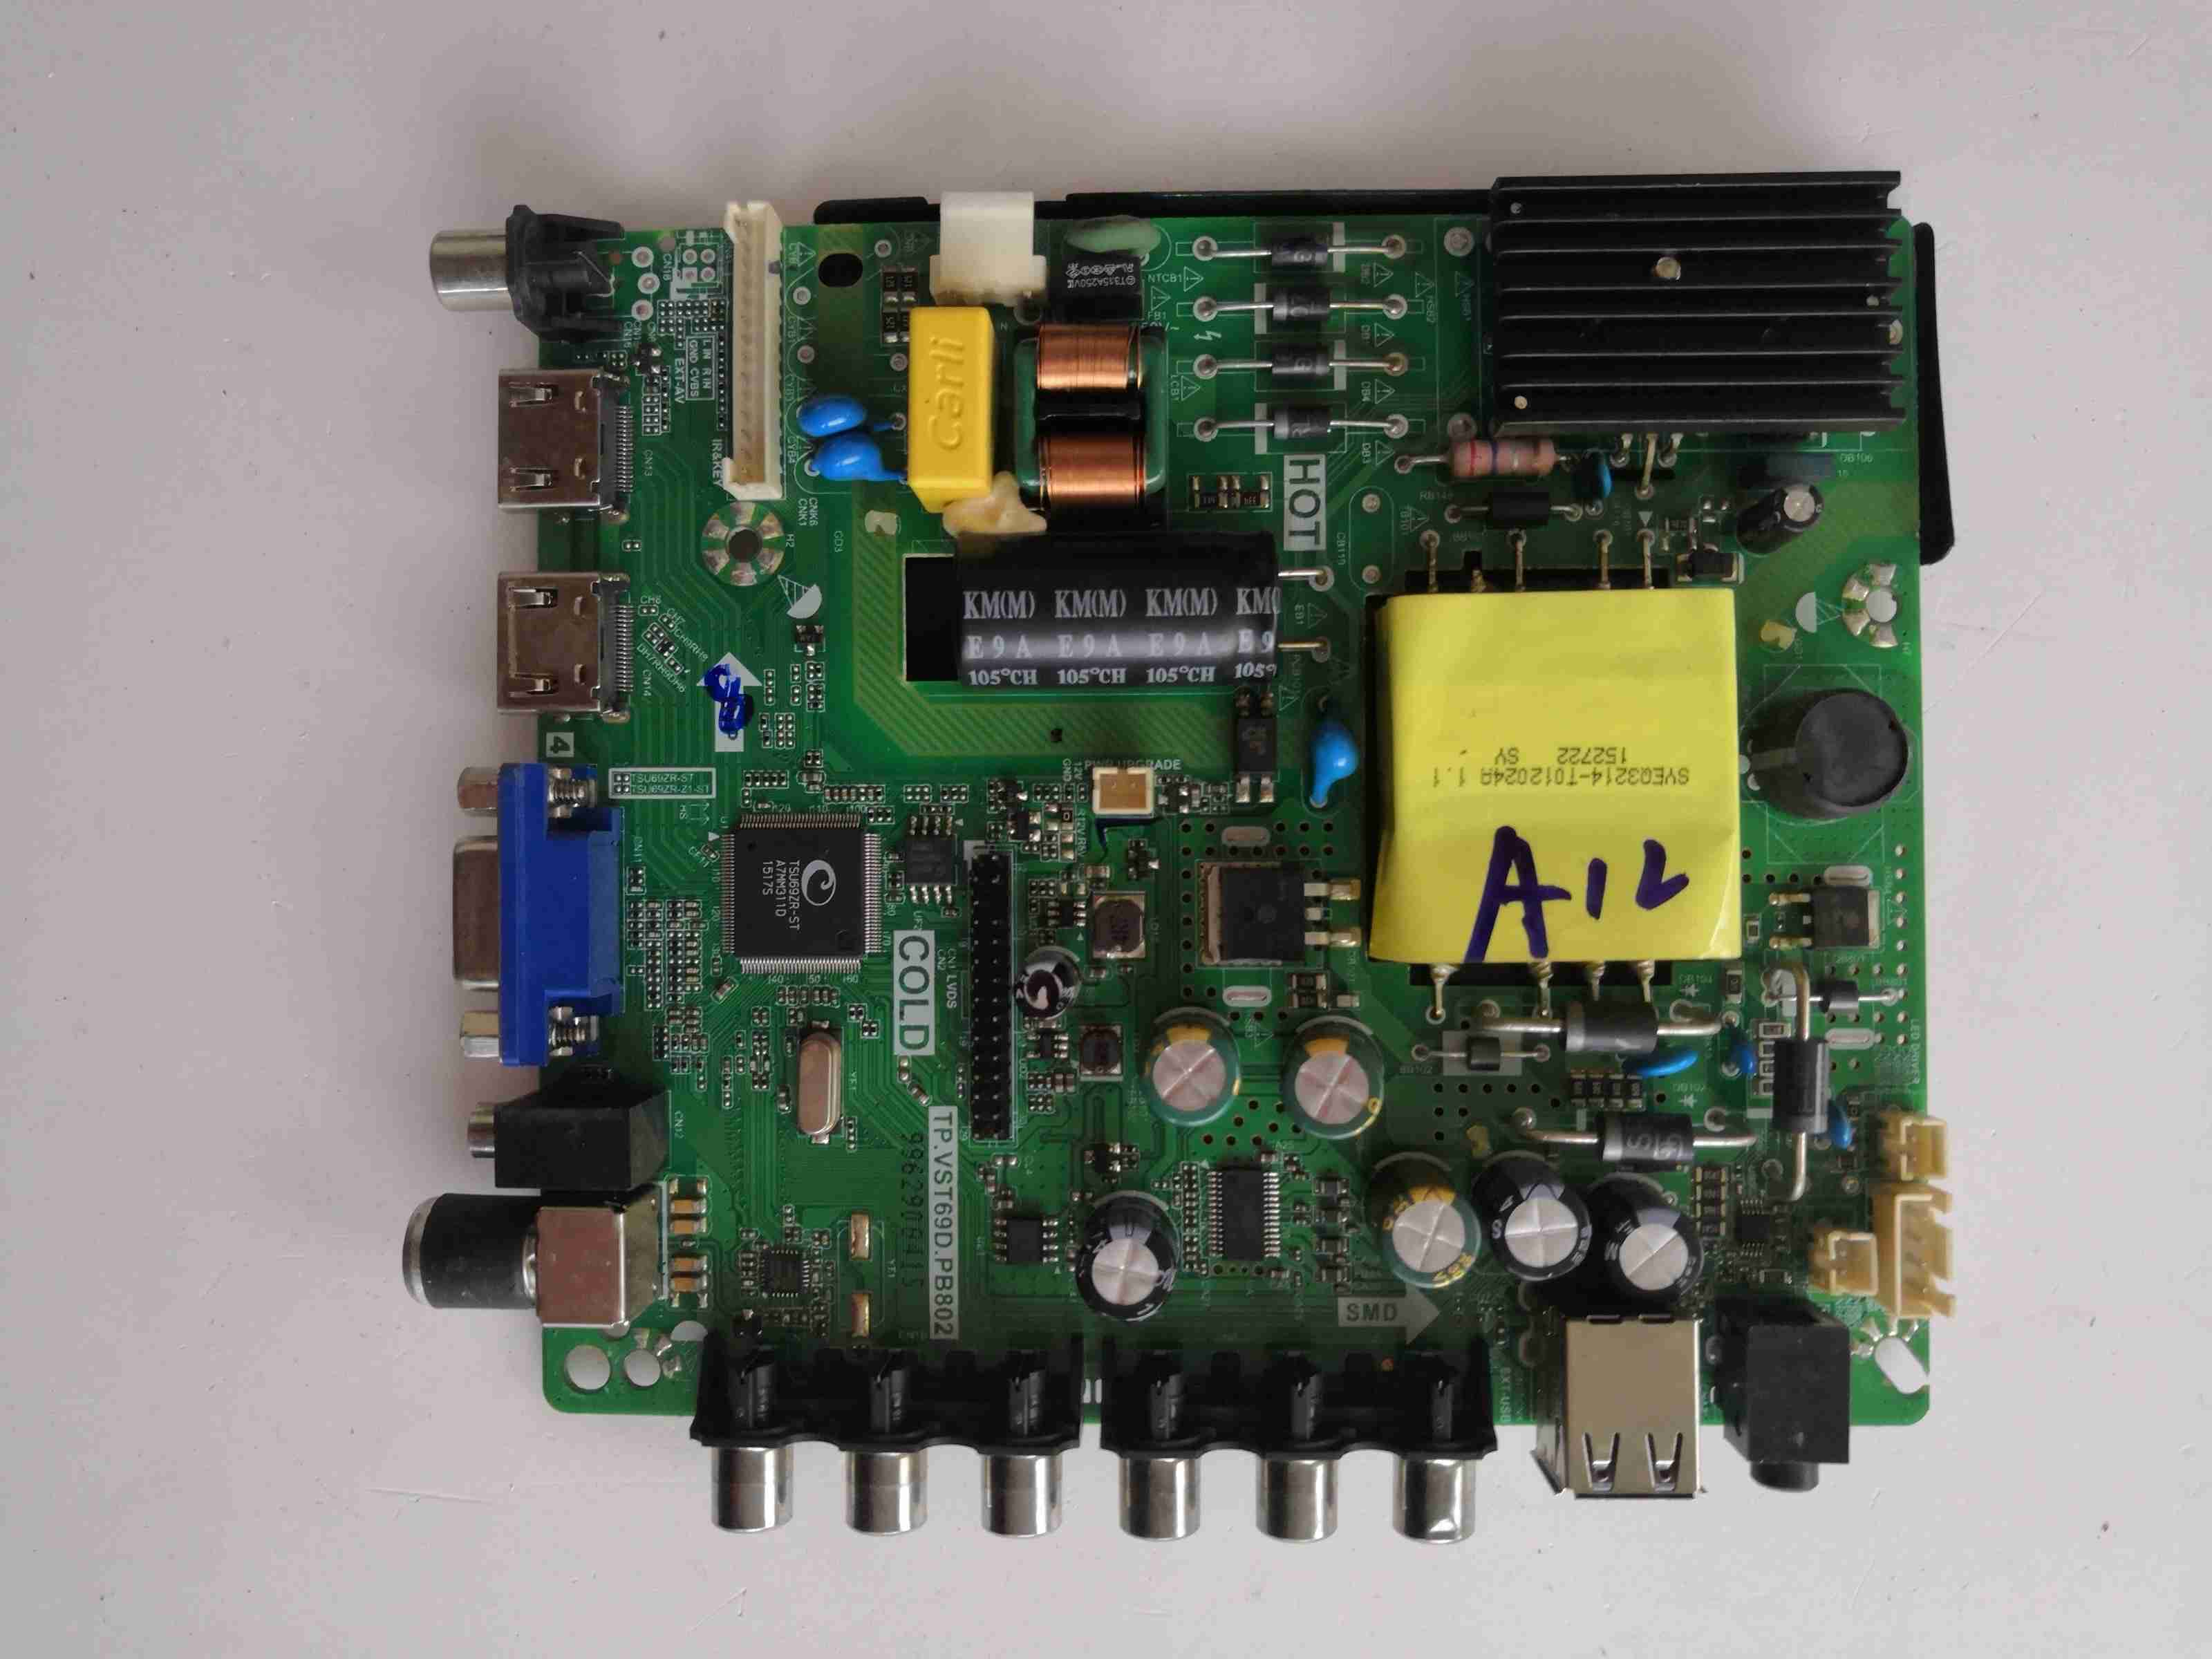 Main Board Circuit Logic Board Constant Current Board Led 39e330c Motherboard Tp.vst69d.pb716 Screen 1677yt Measured Audio & Video Replacement Parts